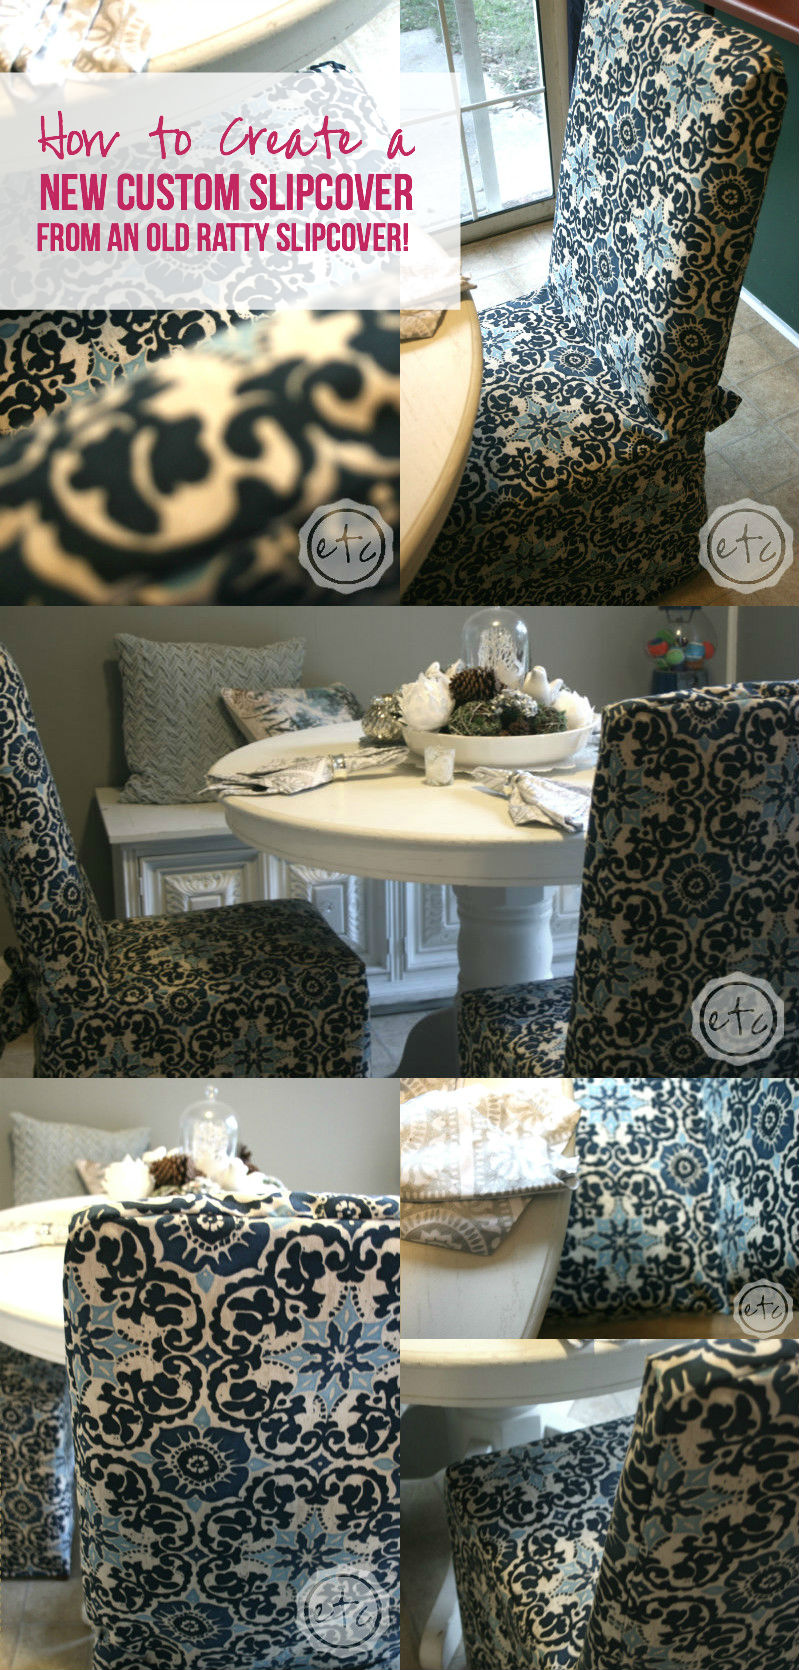 How to Create a New Custom Slipcover... from an Old Ratty Slipcover! with Happily Ever After, Etc.